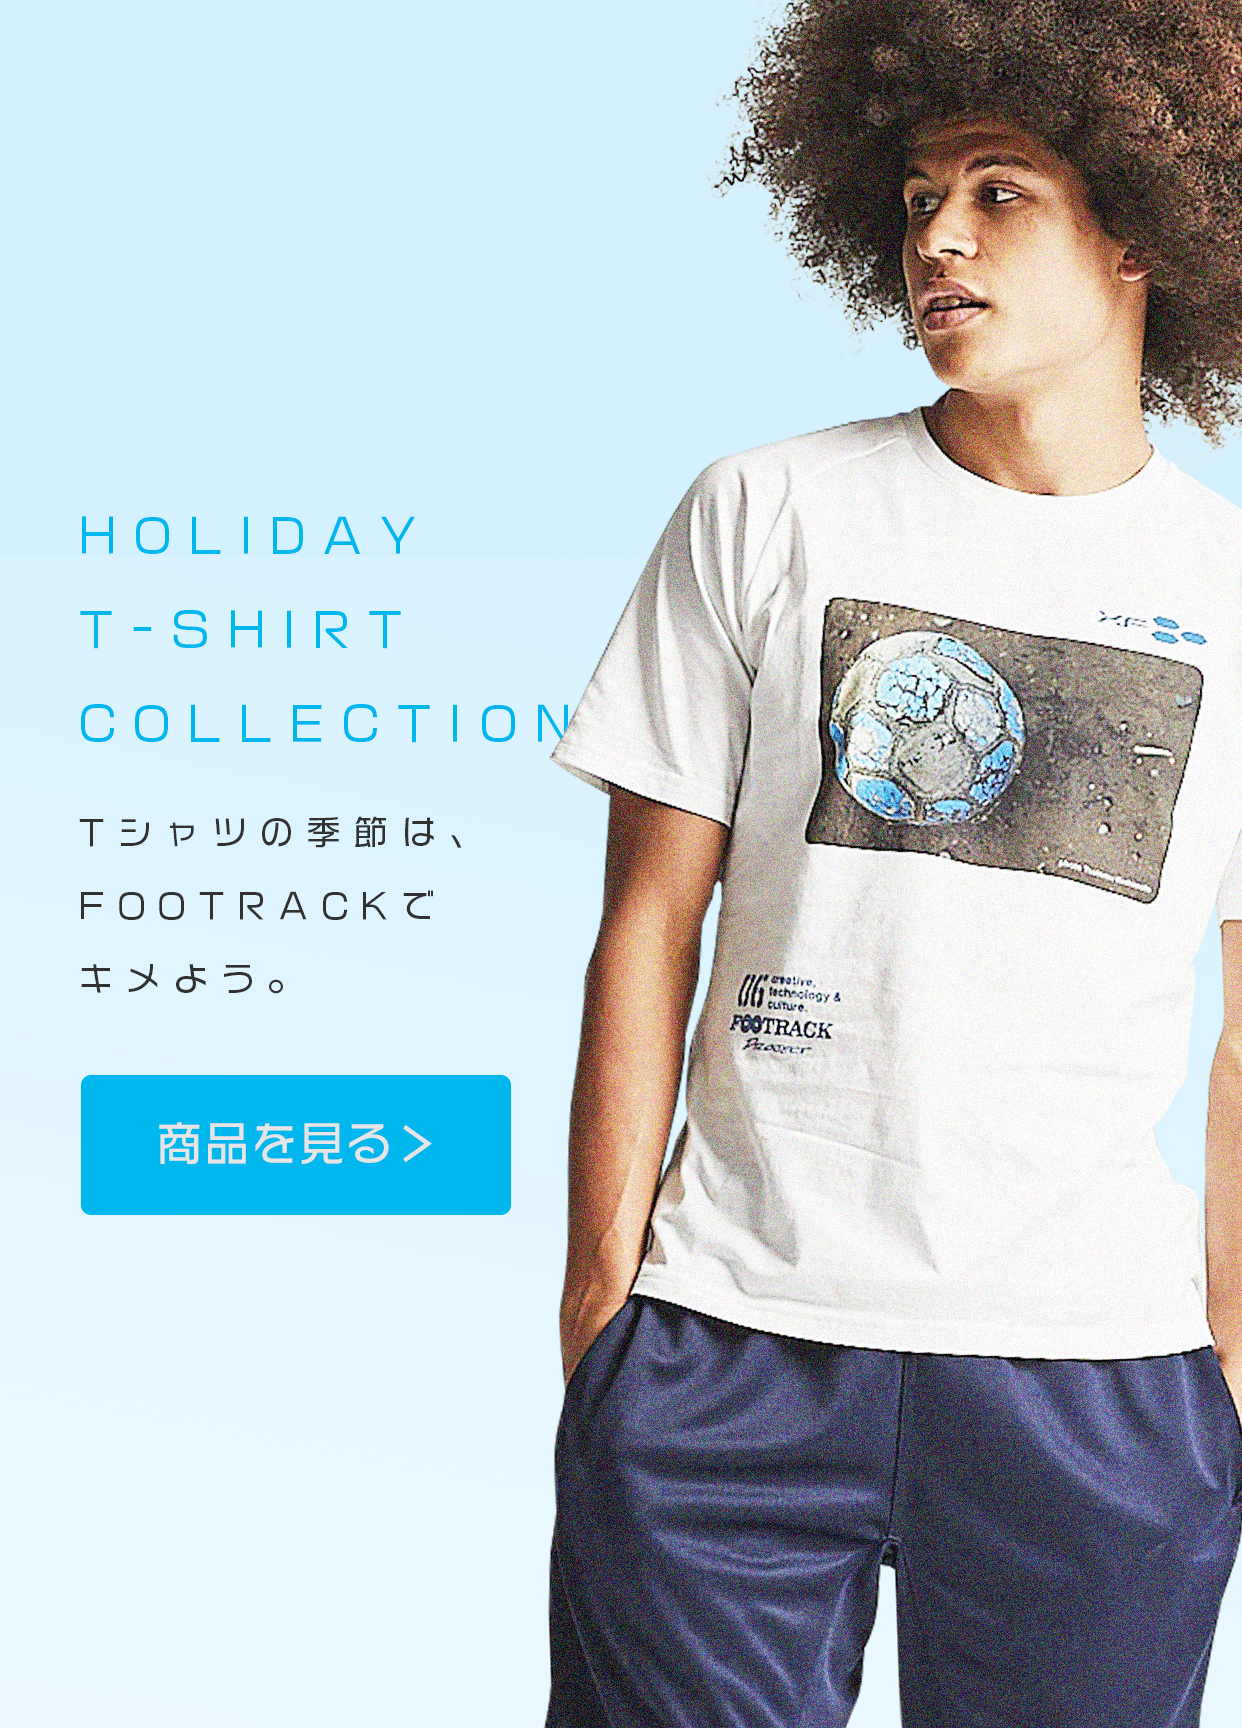 HOLIDAY T-SHIRT COLLECTION